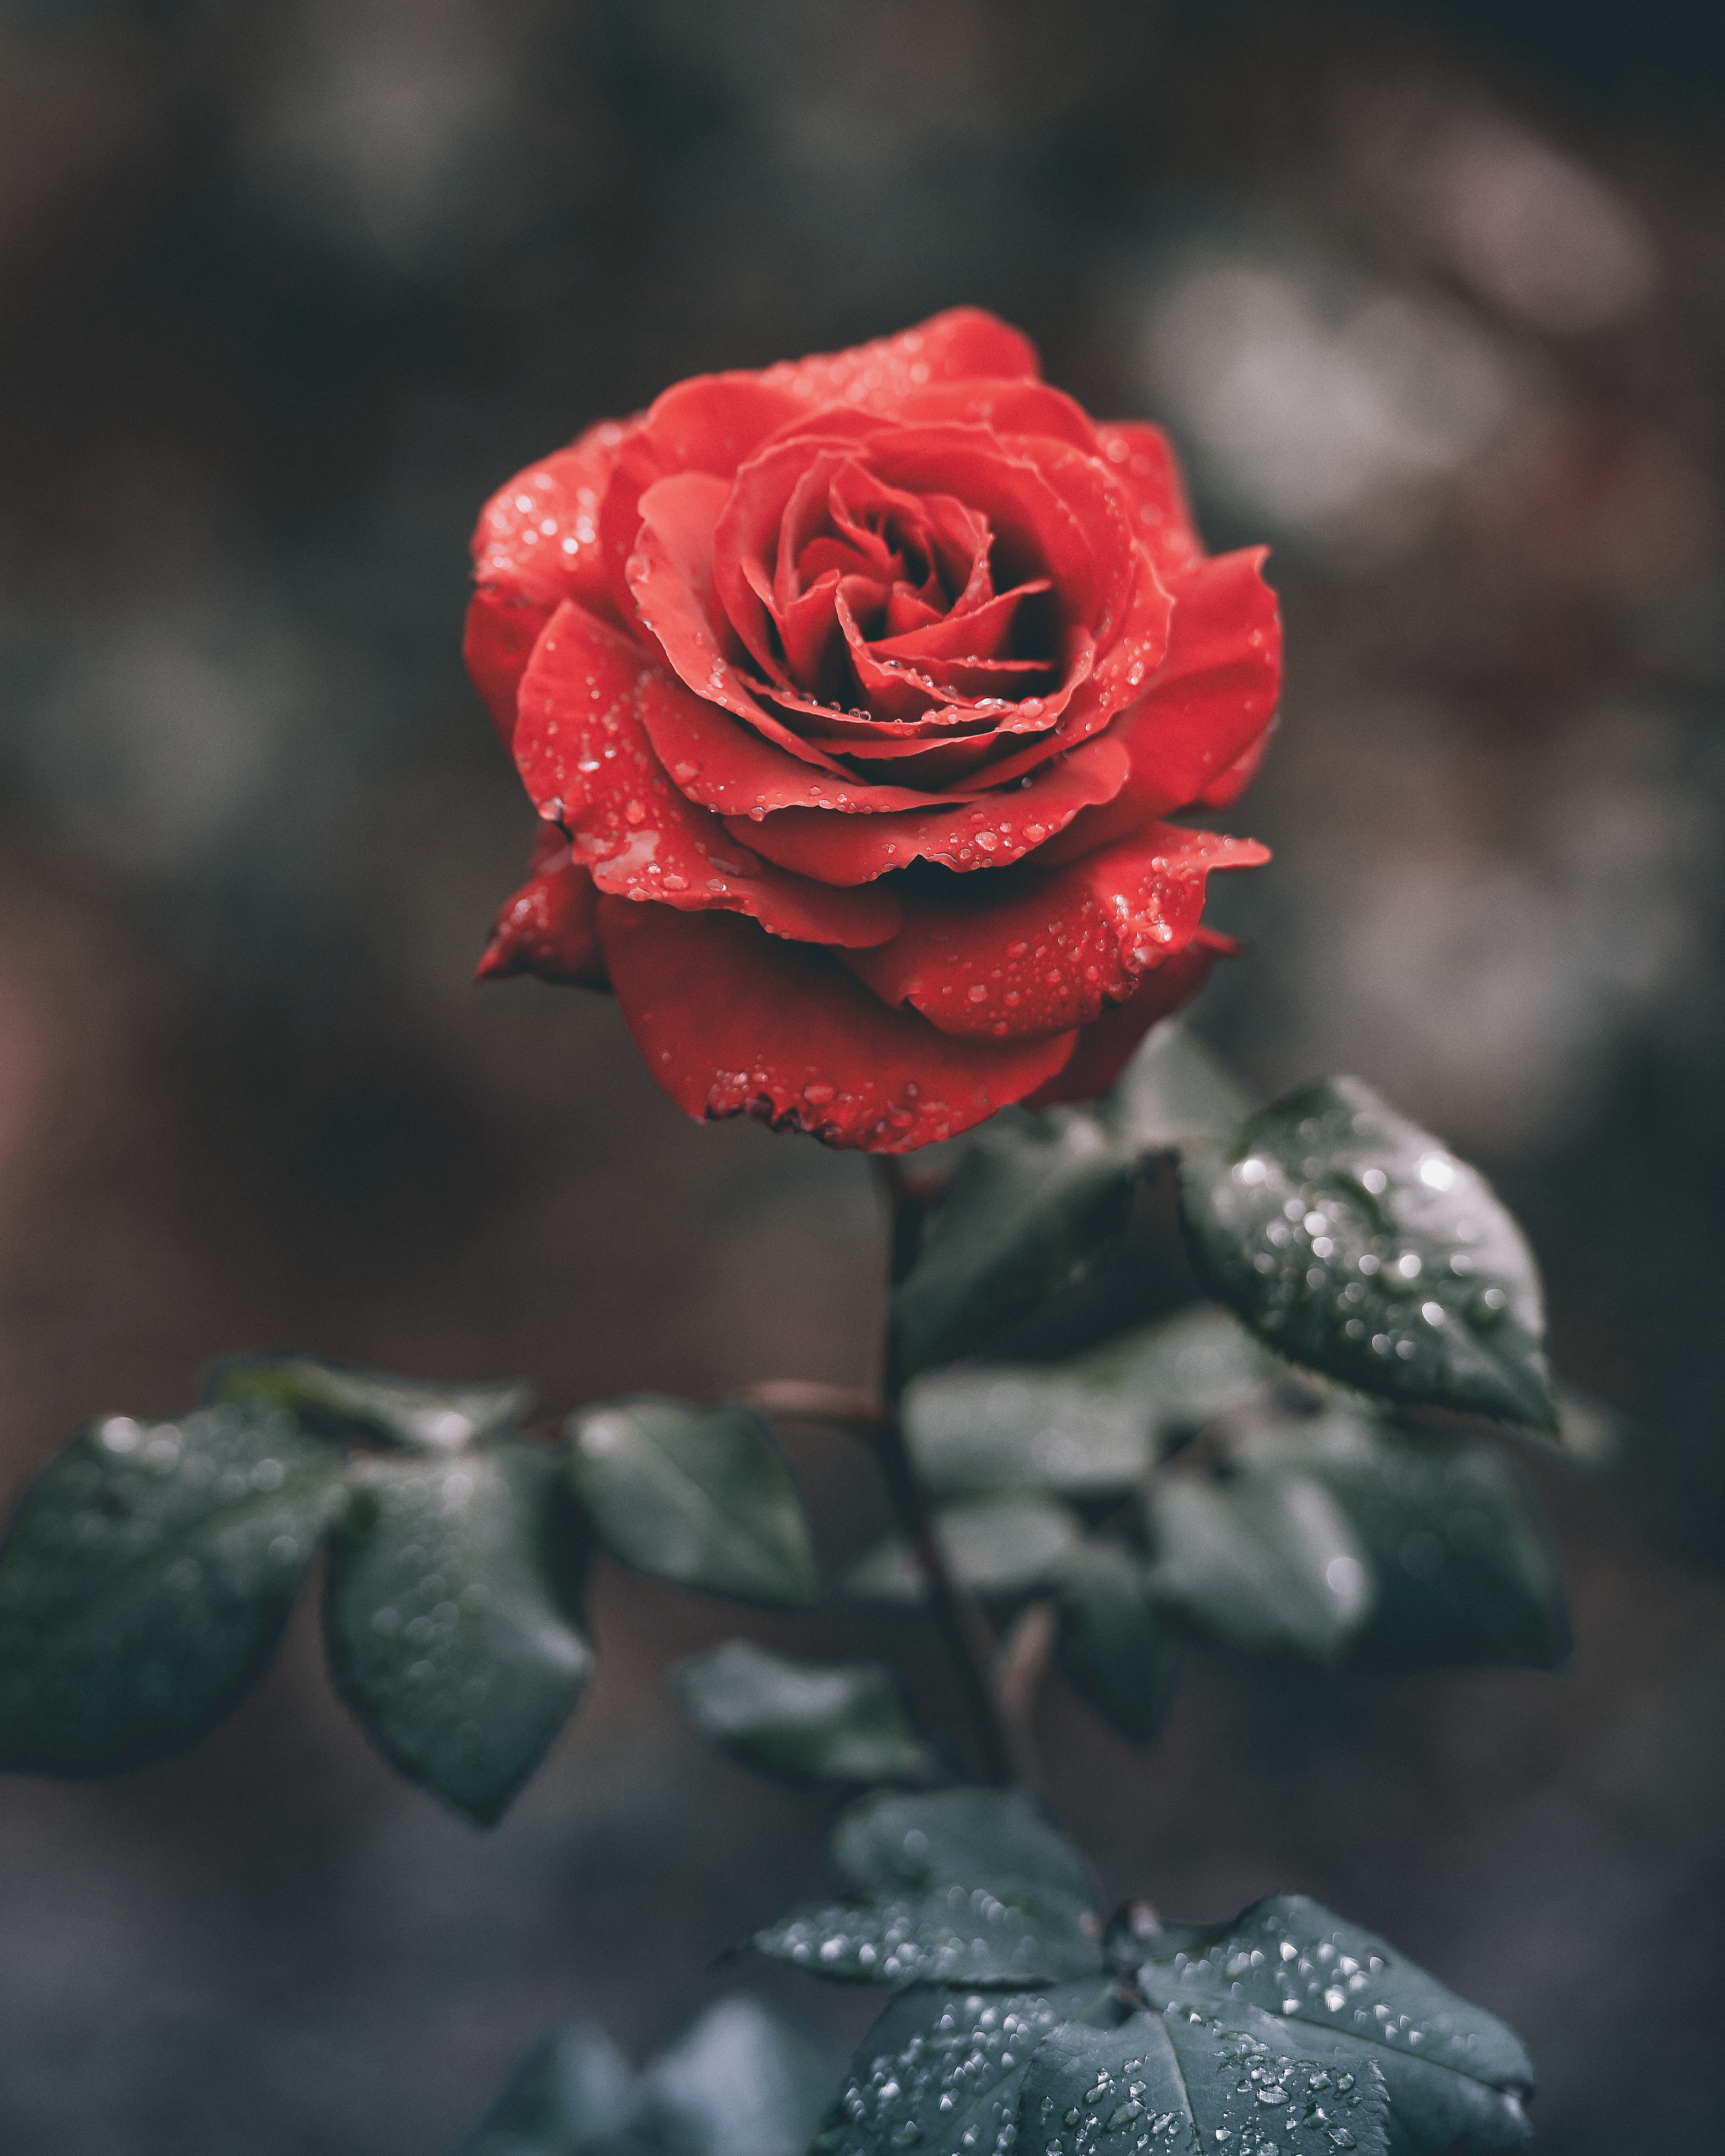 Best 100 Rose Images Download Free Images on Unsplash